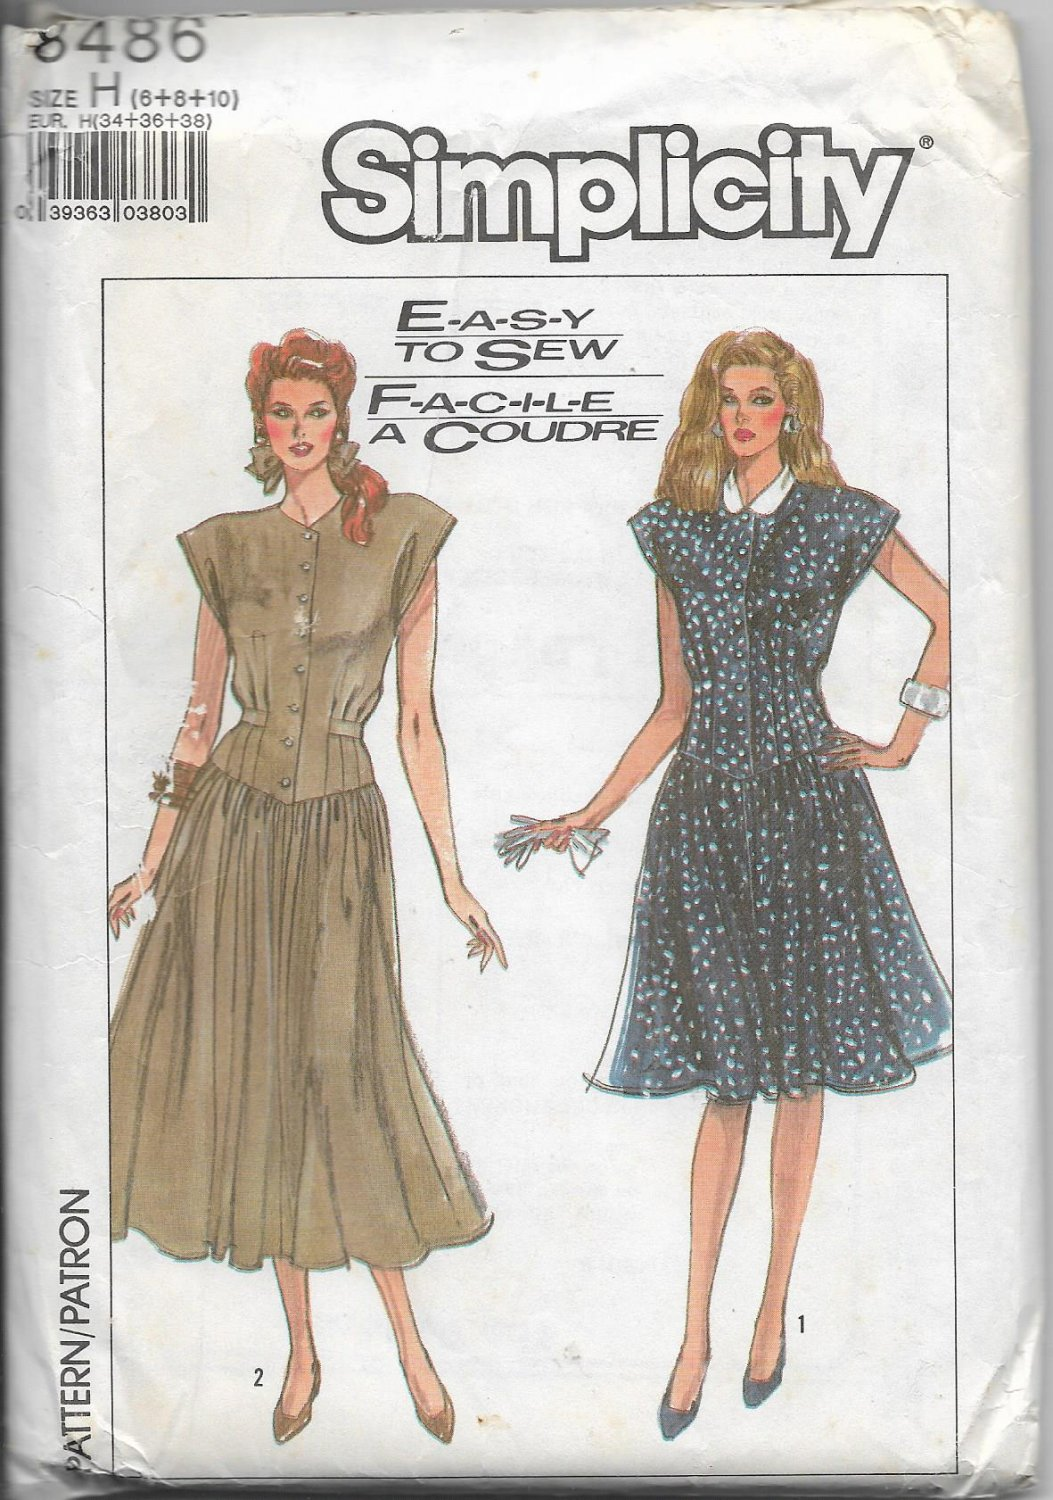 Simplicity 8486 Misses Dress in Two Lengths Drop Waist Sizes 6+8+10 Adjustable for Petite